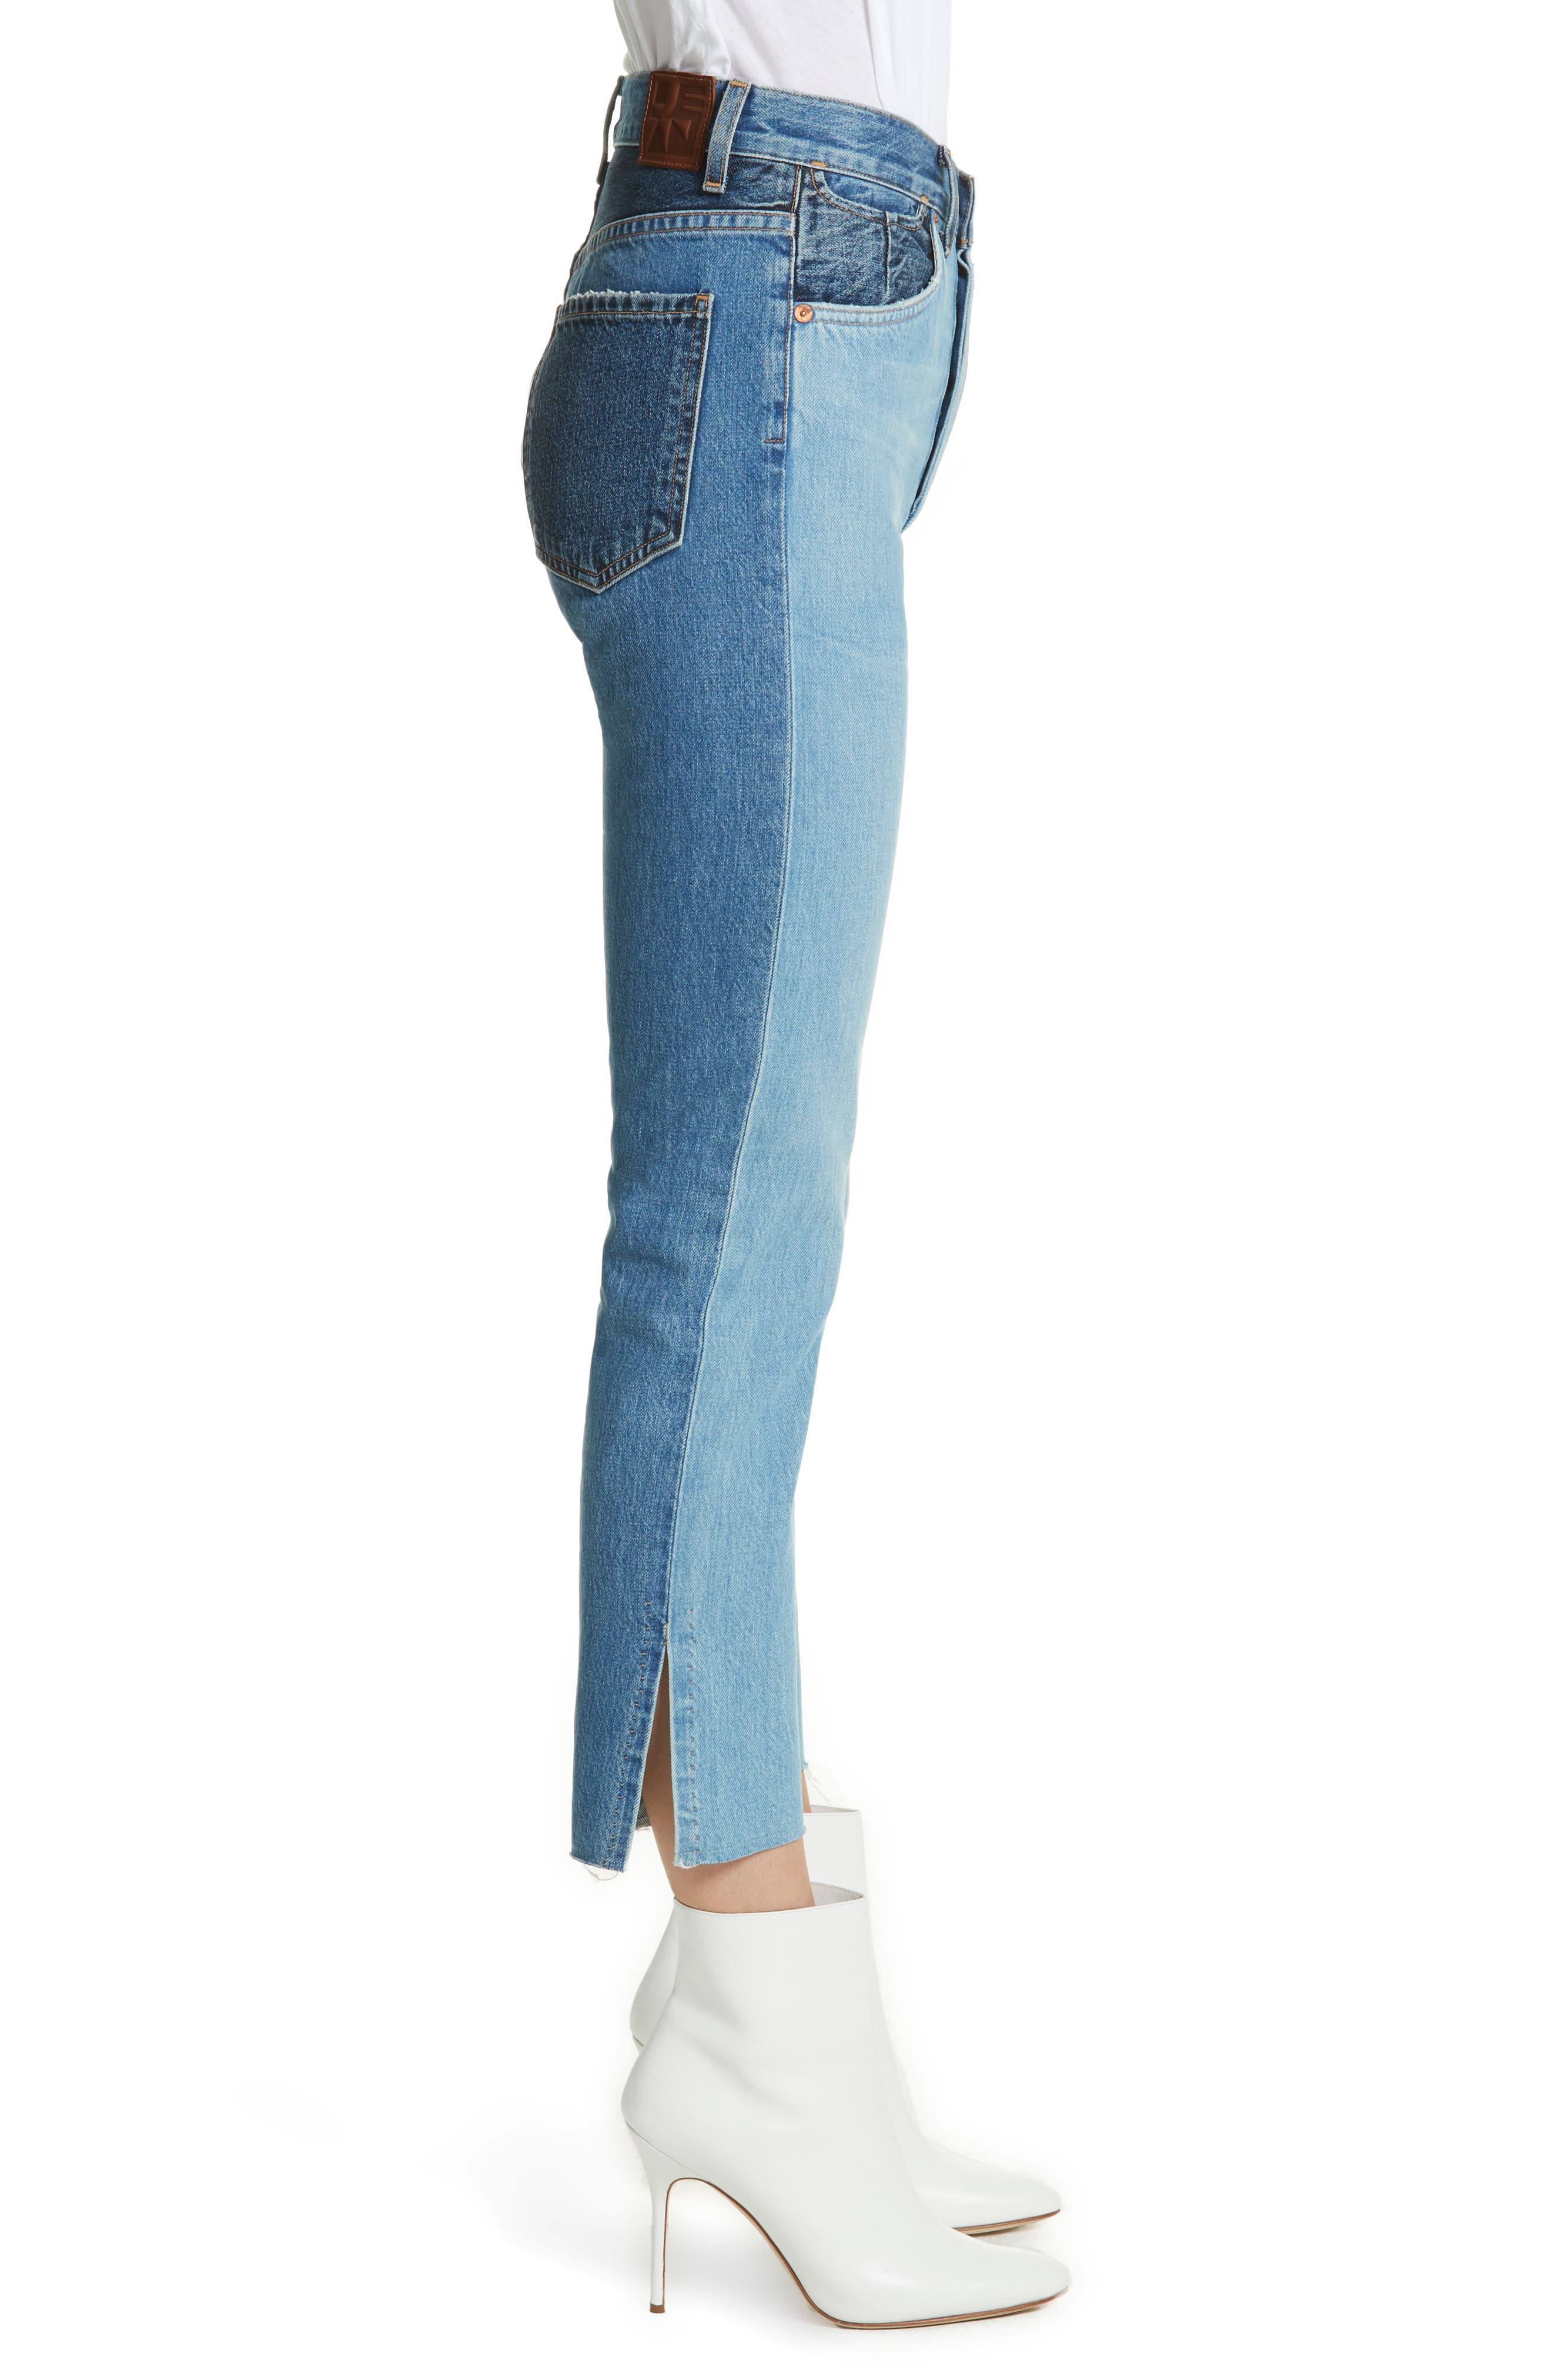 Hunter High Rise Straight Leg Crop Jeans,                             Alternate thumbnail 3, color,                             424